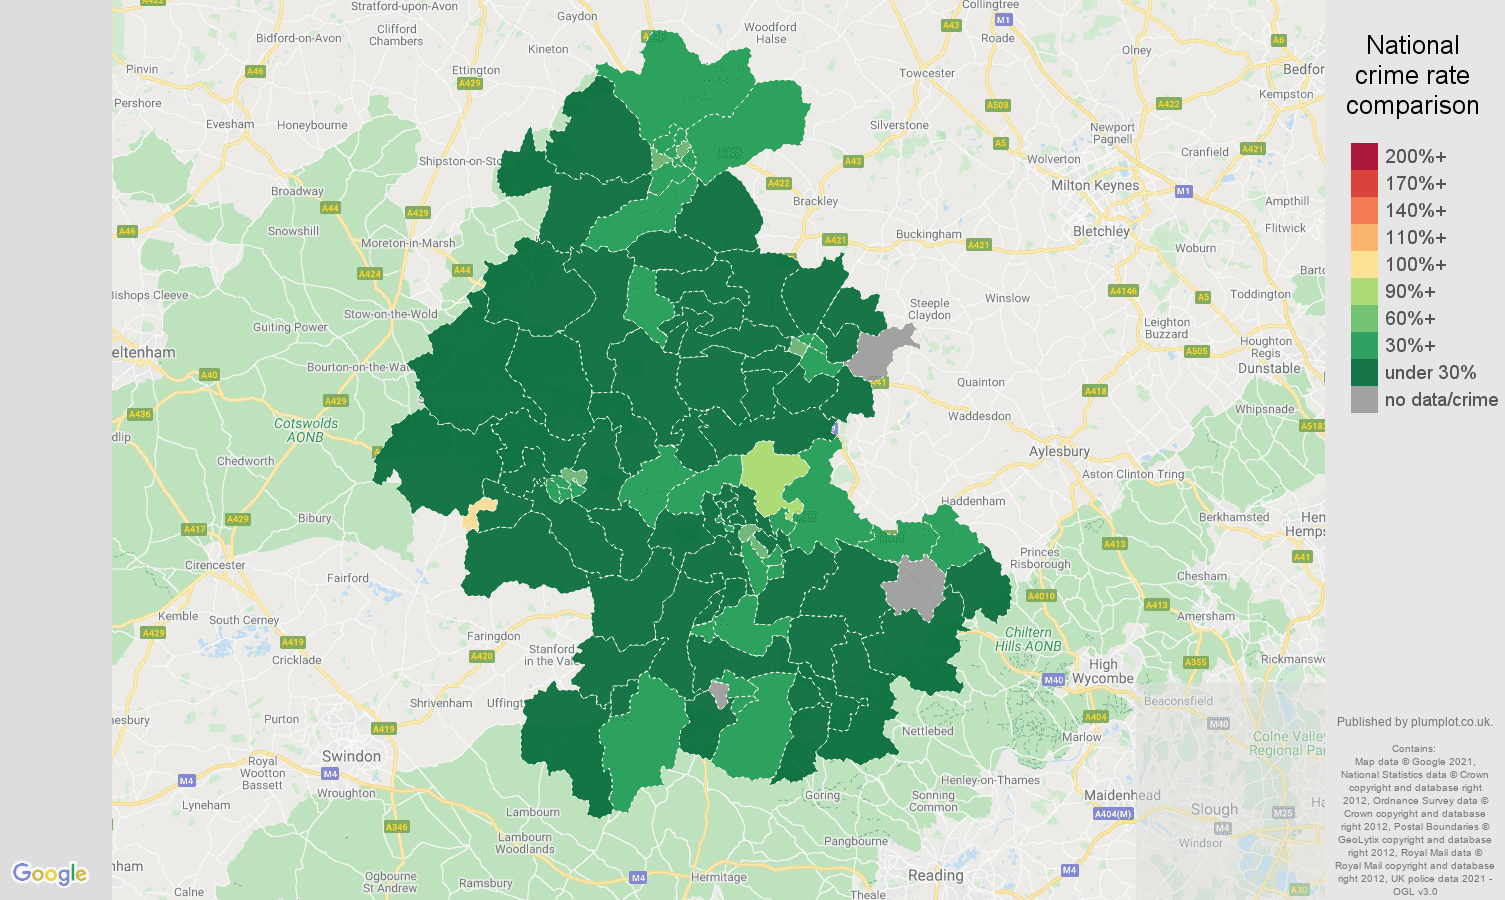 Oxford antisocial behaviour crime rate comparison map